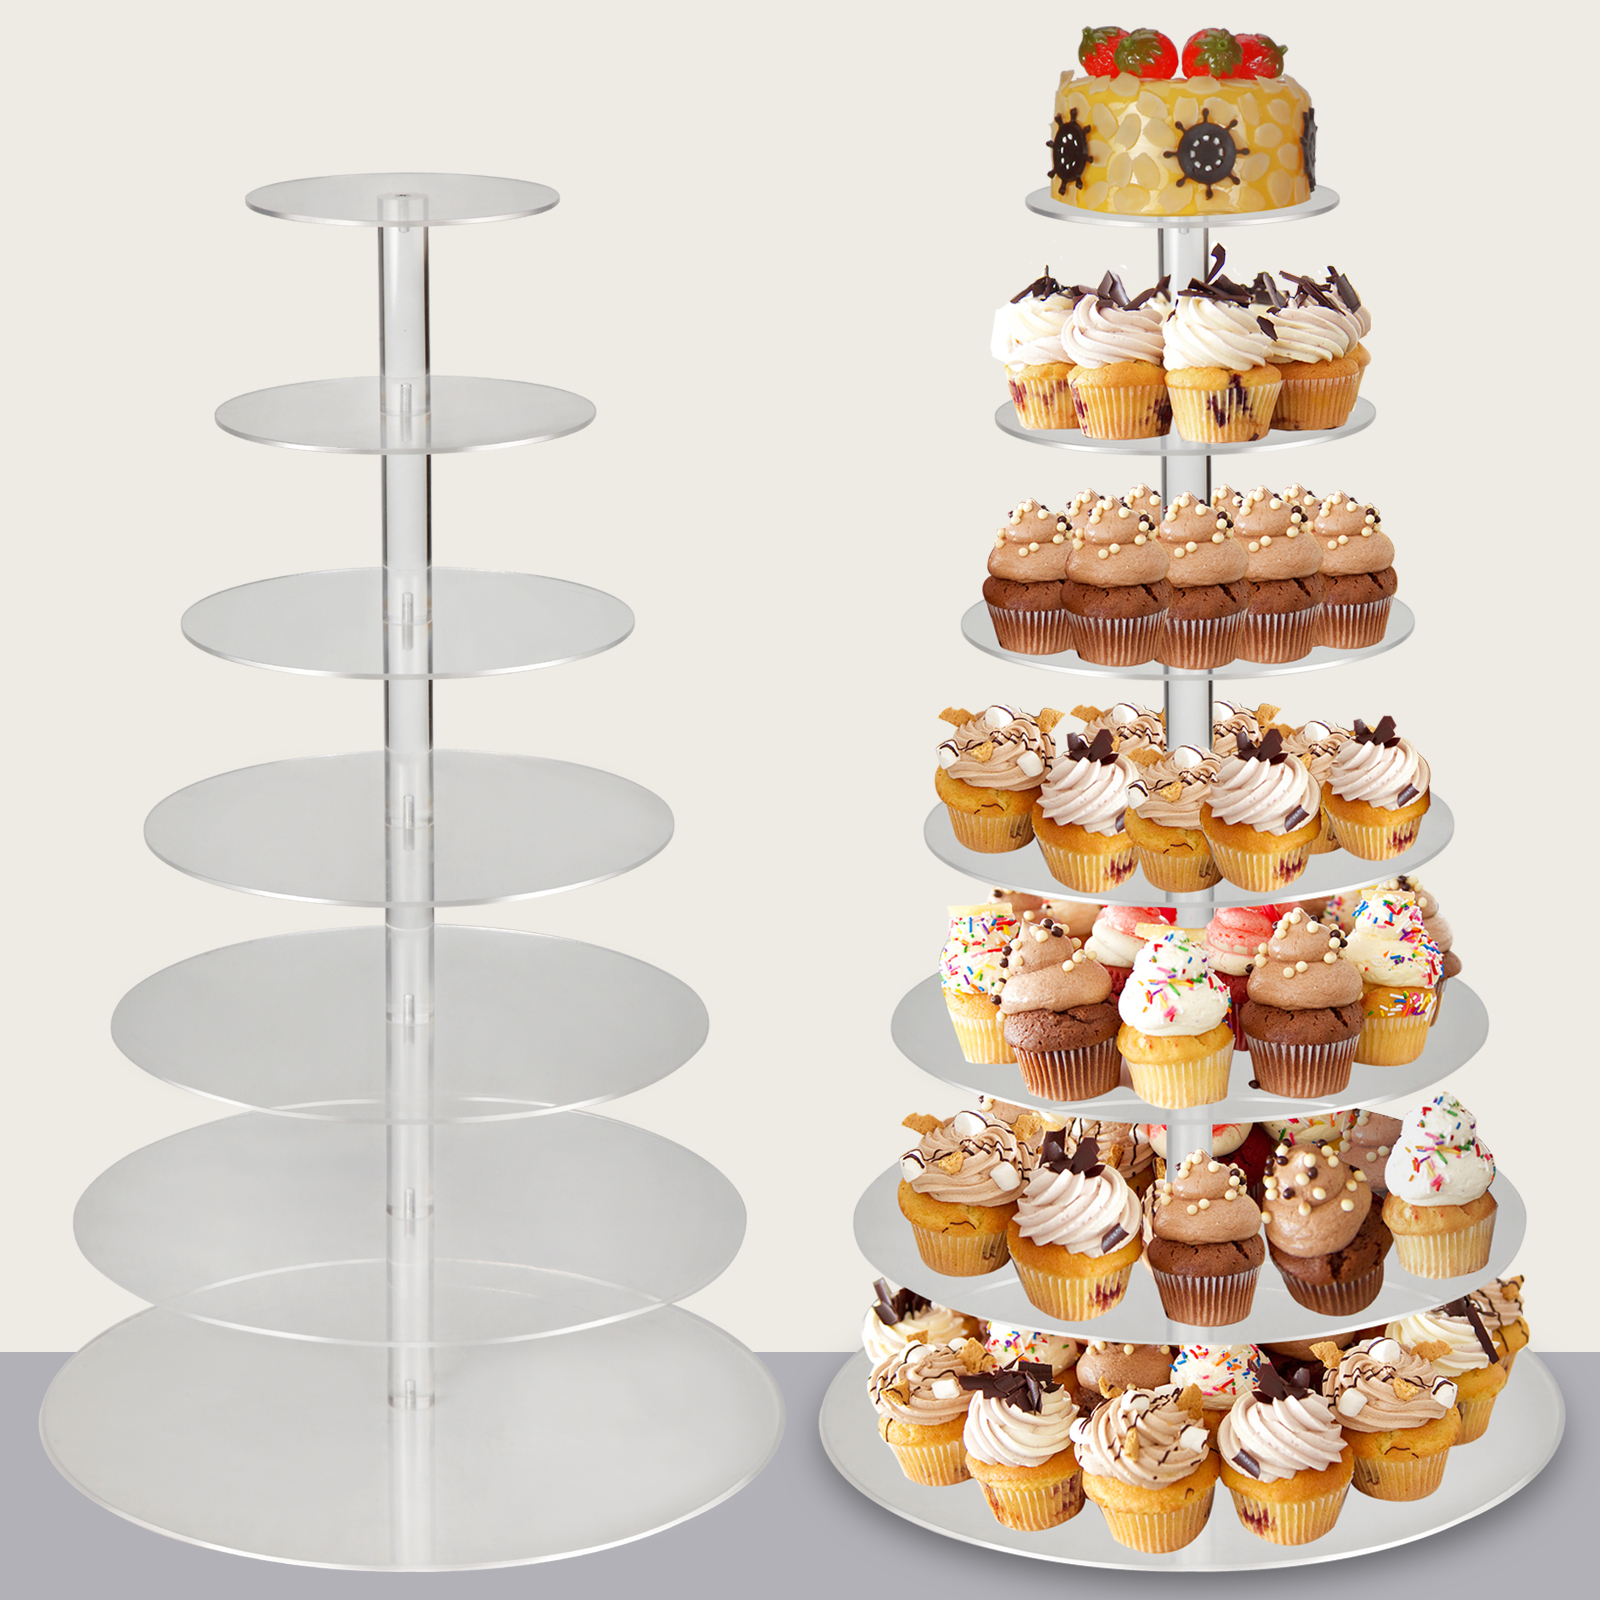 Cupcake Stands For Weddings: 7-Tier Clear Acrylic Round Cupcake Birthday Wedding Cake